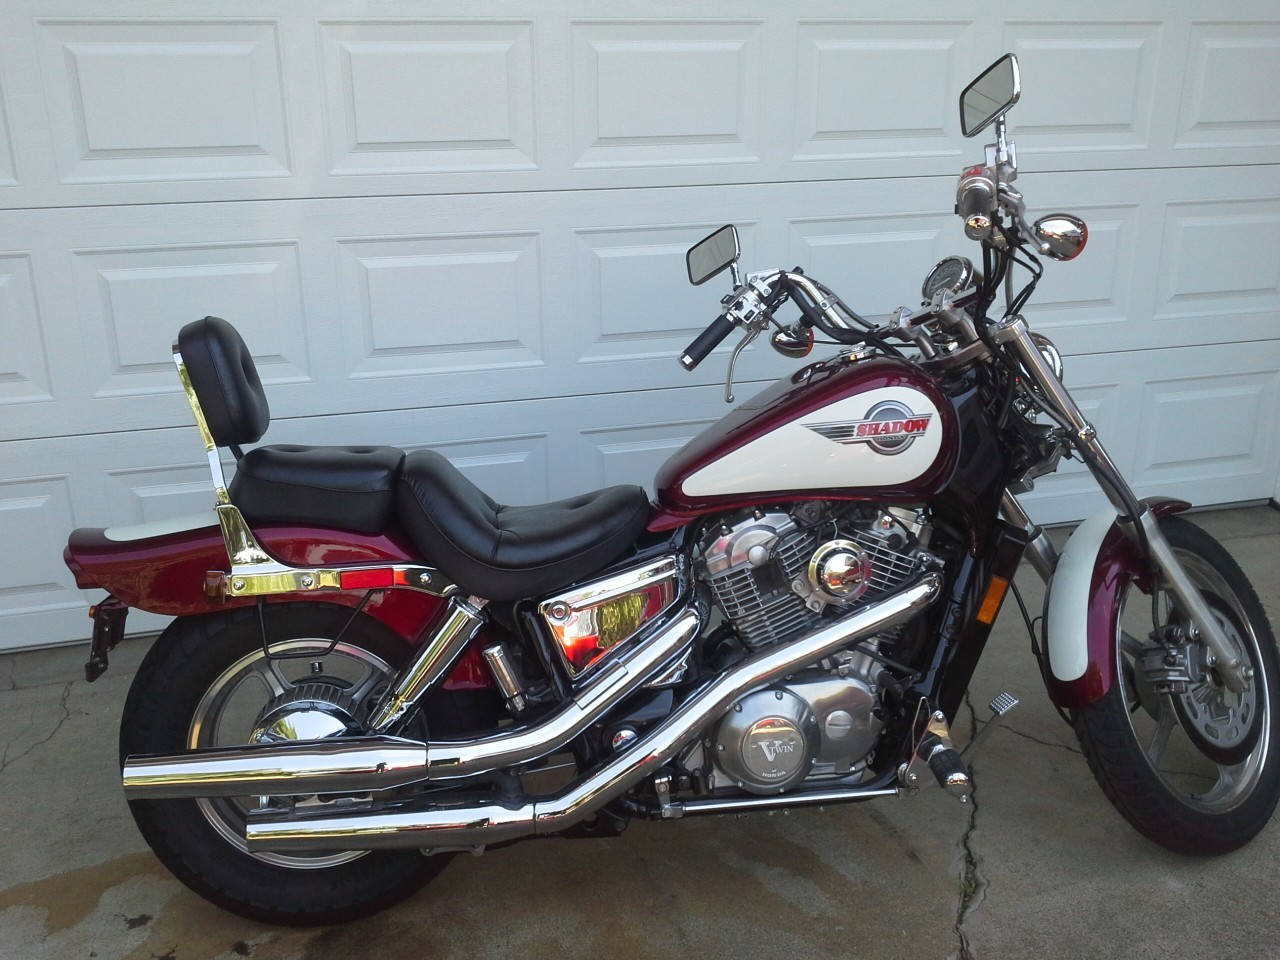 1994 Honda Shadow VT1100, motorcycle listing